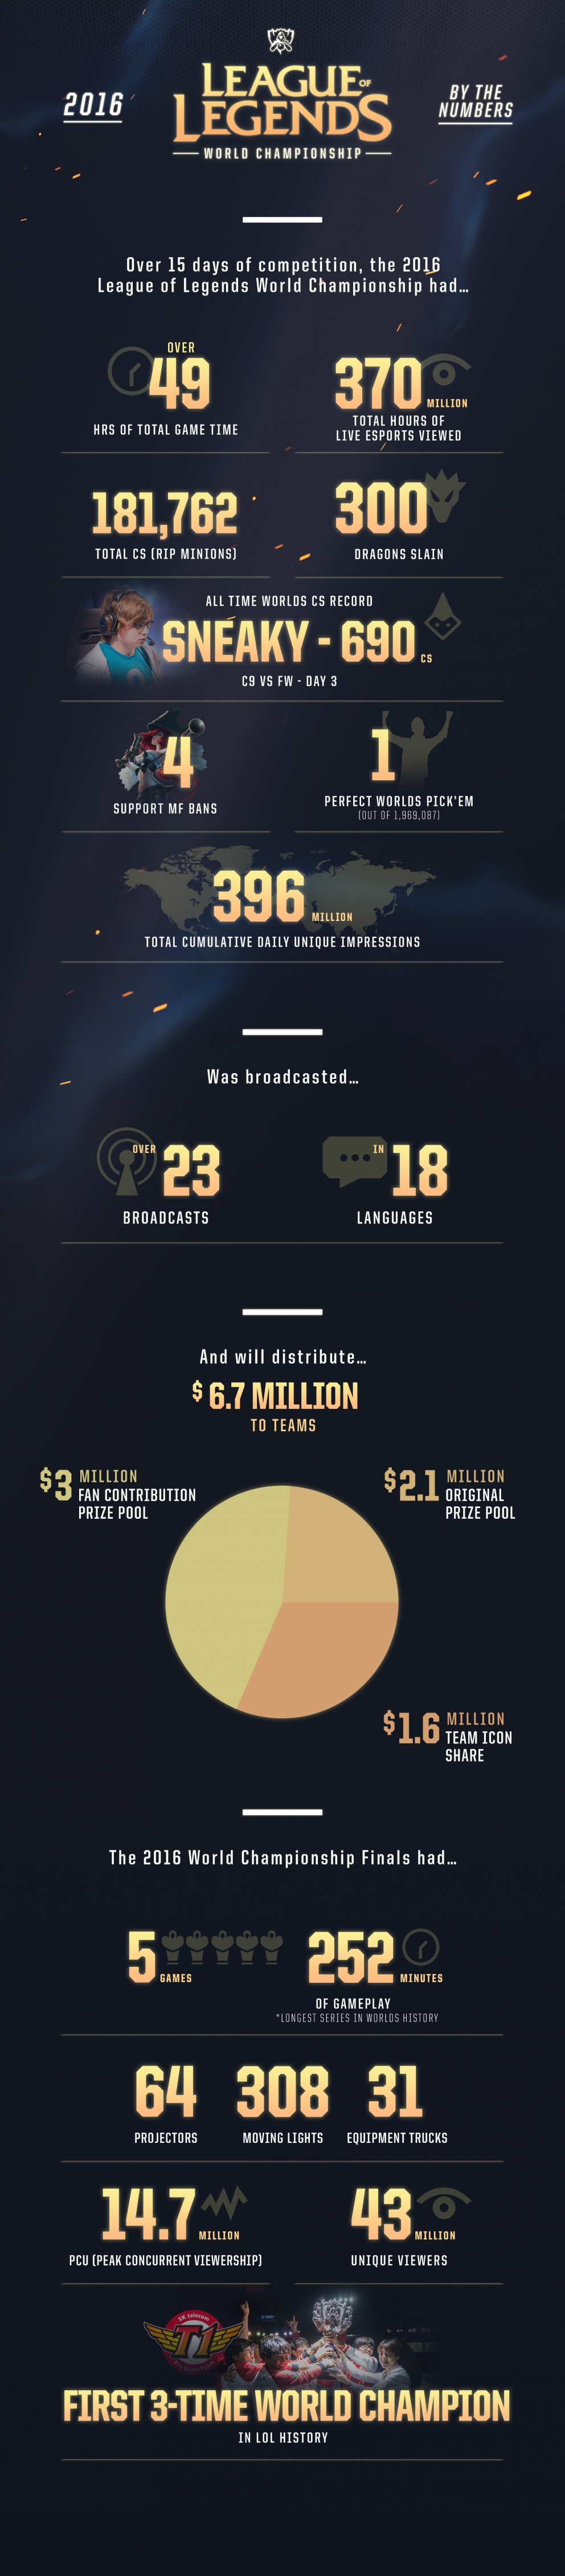 League of Legends World Championship Infographic